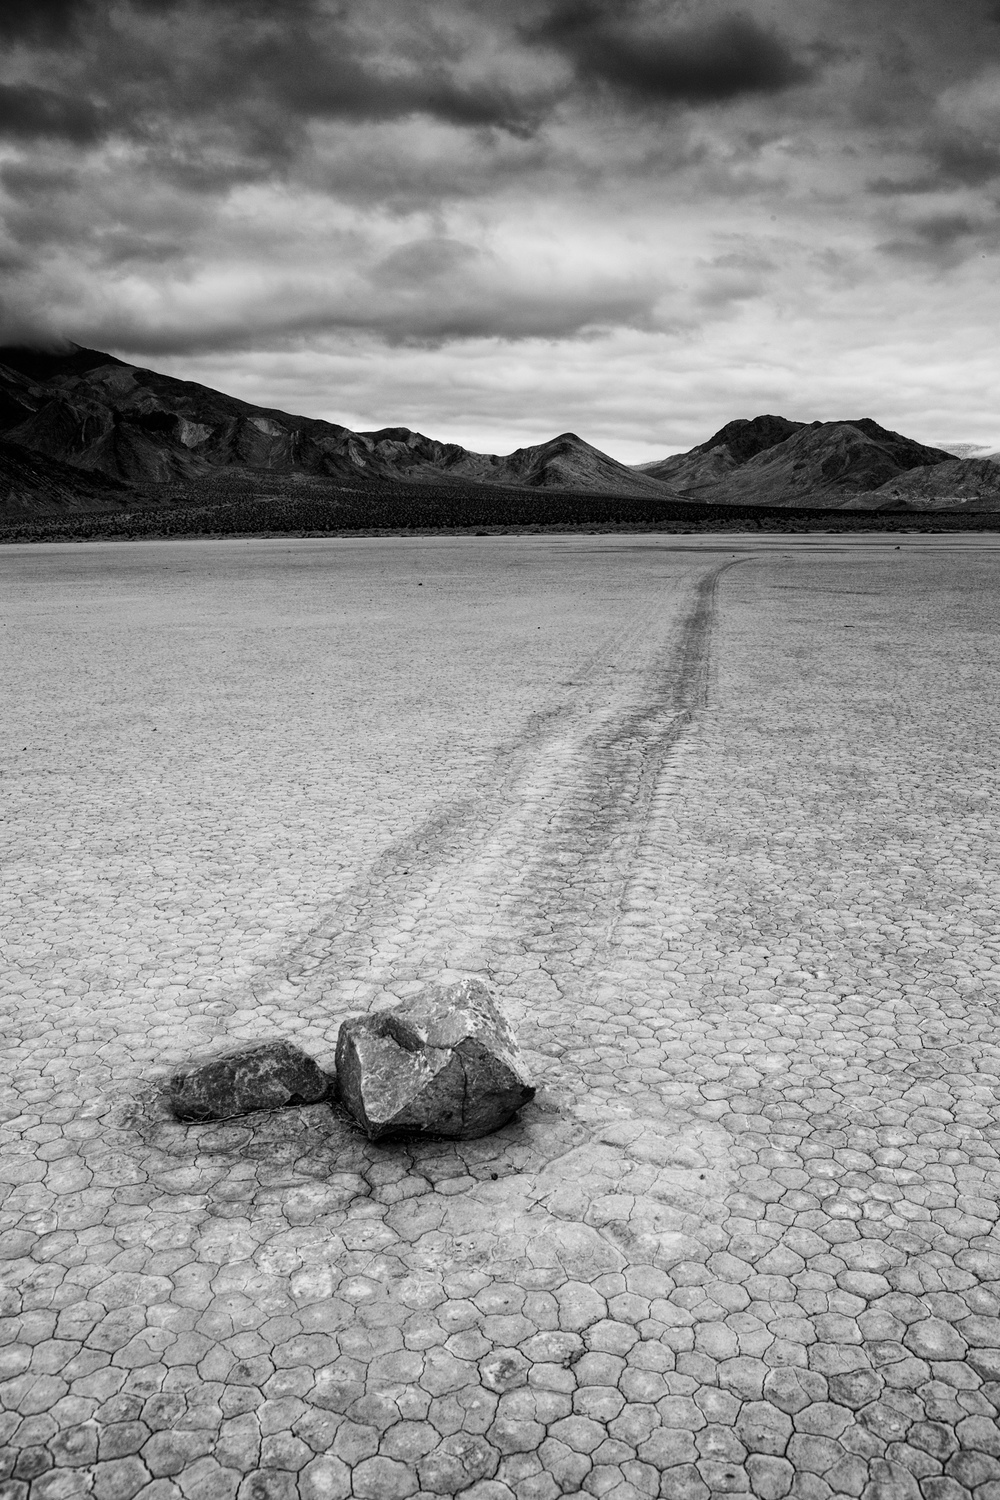 20141219_GK_DeathValleyDec14_MG_1909-Edit.jpg